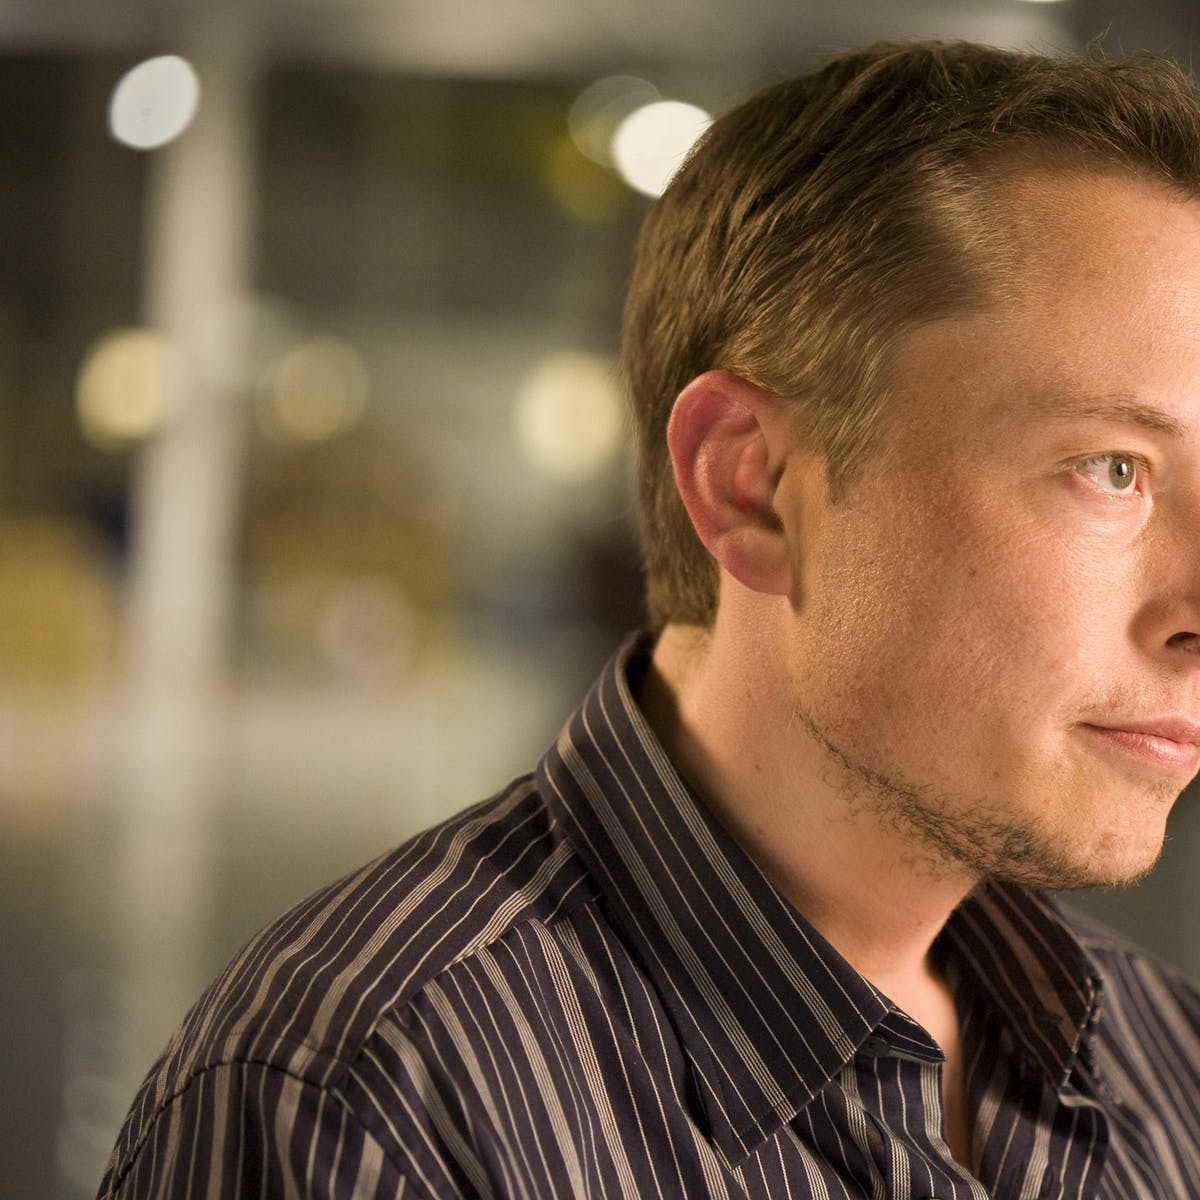 Elon Musk Urges People to Watch Chris Paine's A.I. Movie While It's Free